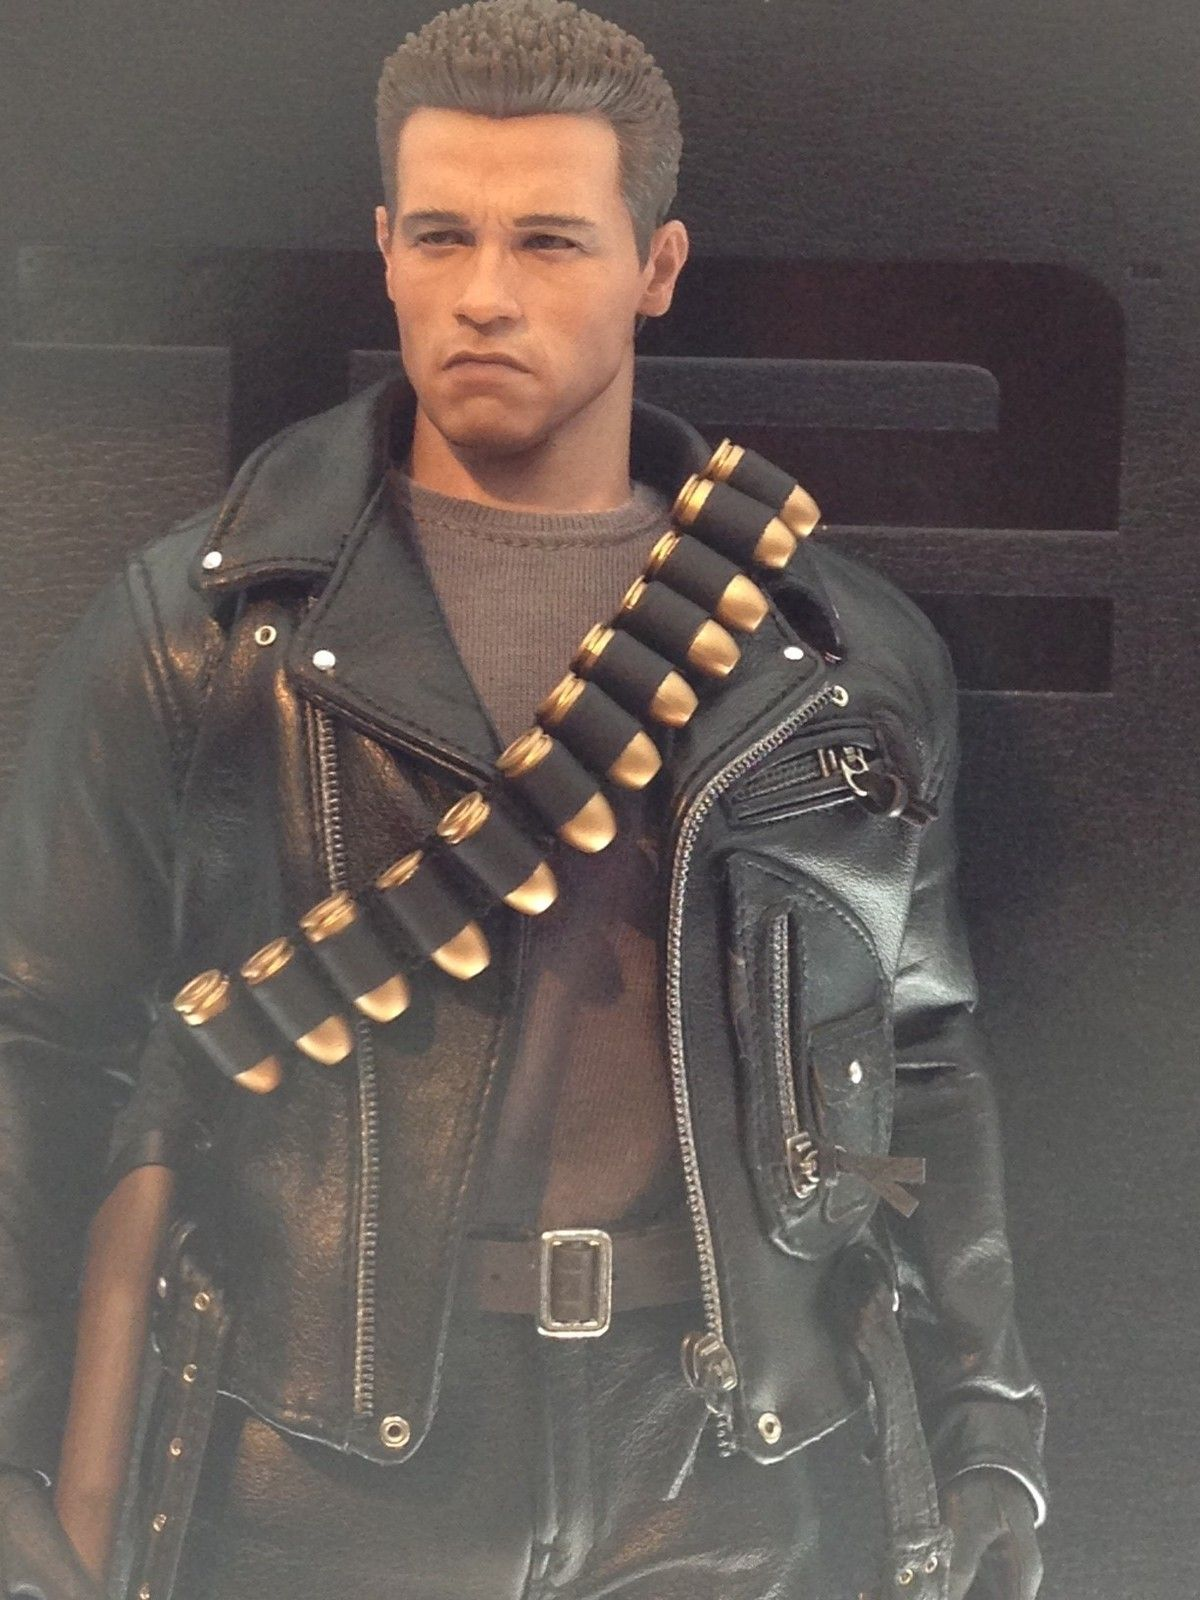 Hot Toys 1 6 DX10 Terminator T 800 Judgment Day Arnold